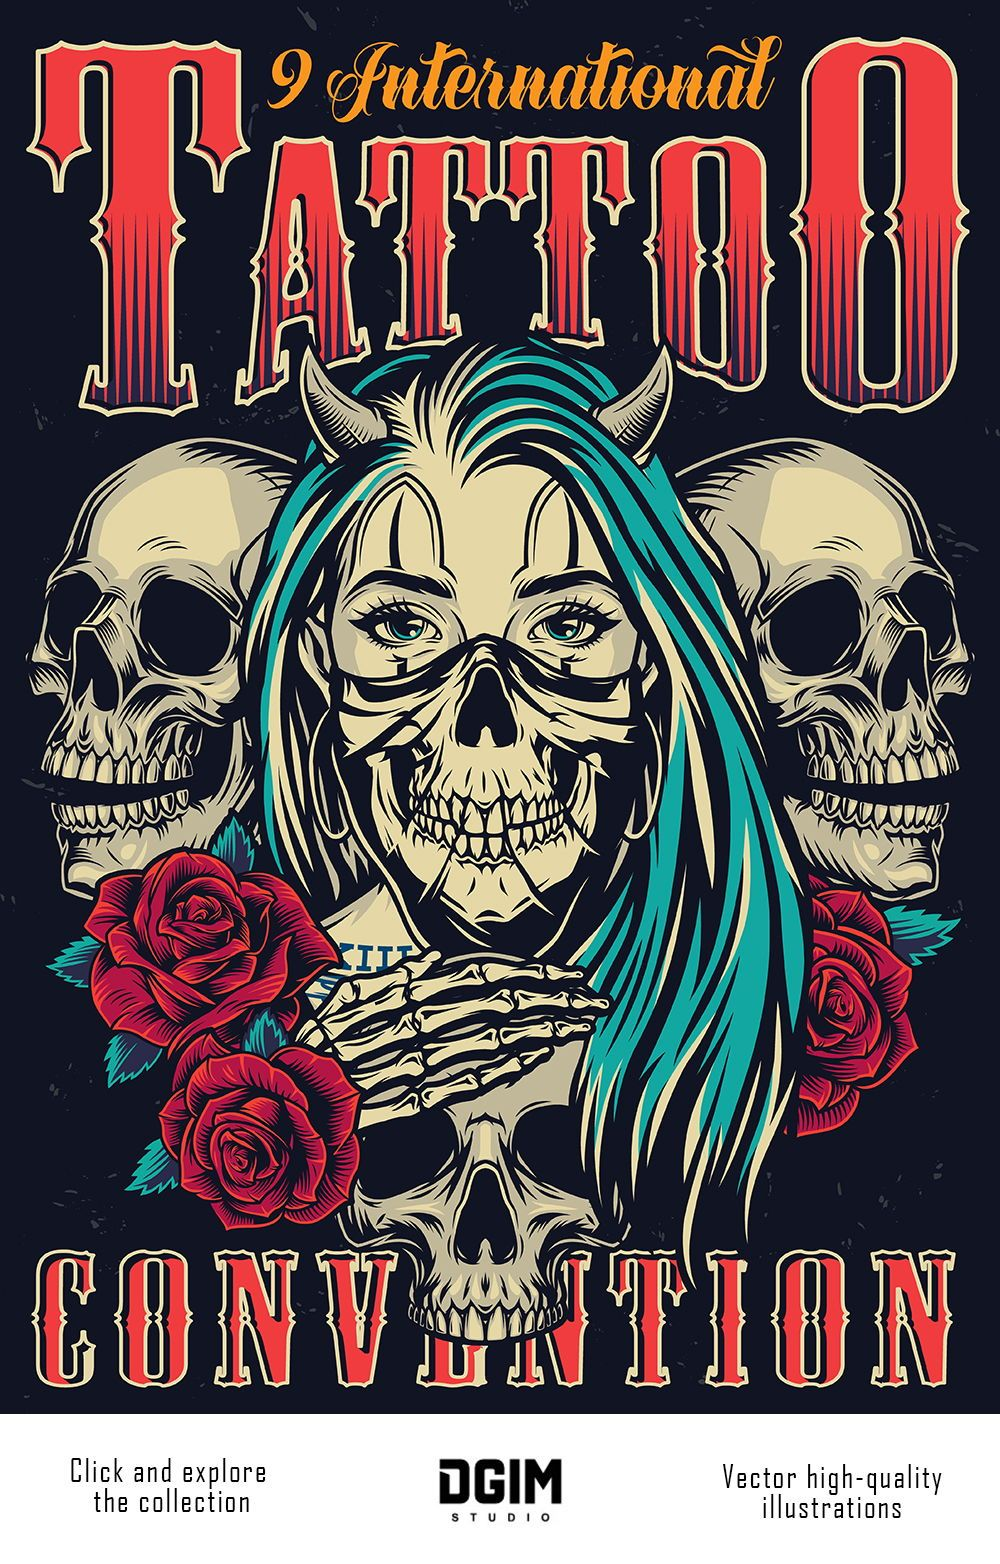 60 Chicano Vector Designs In 2020 Tattoo Posters Event Poster Design Vintage Tattoo